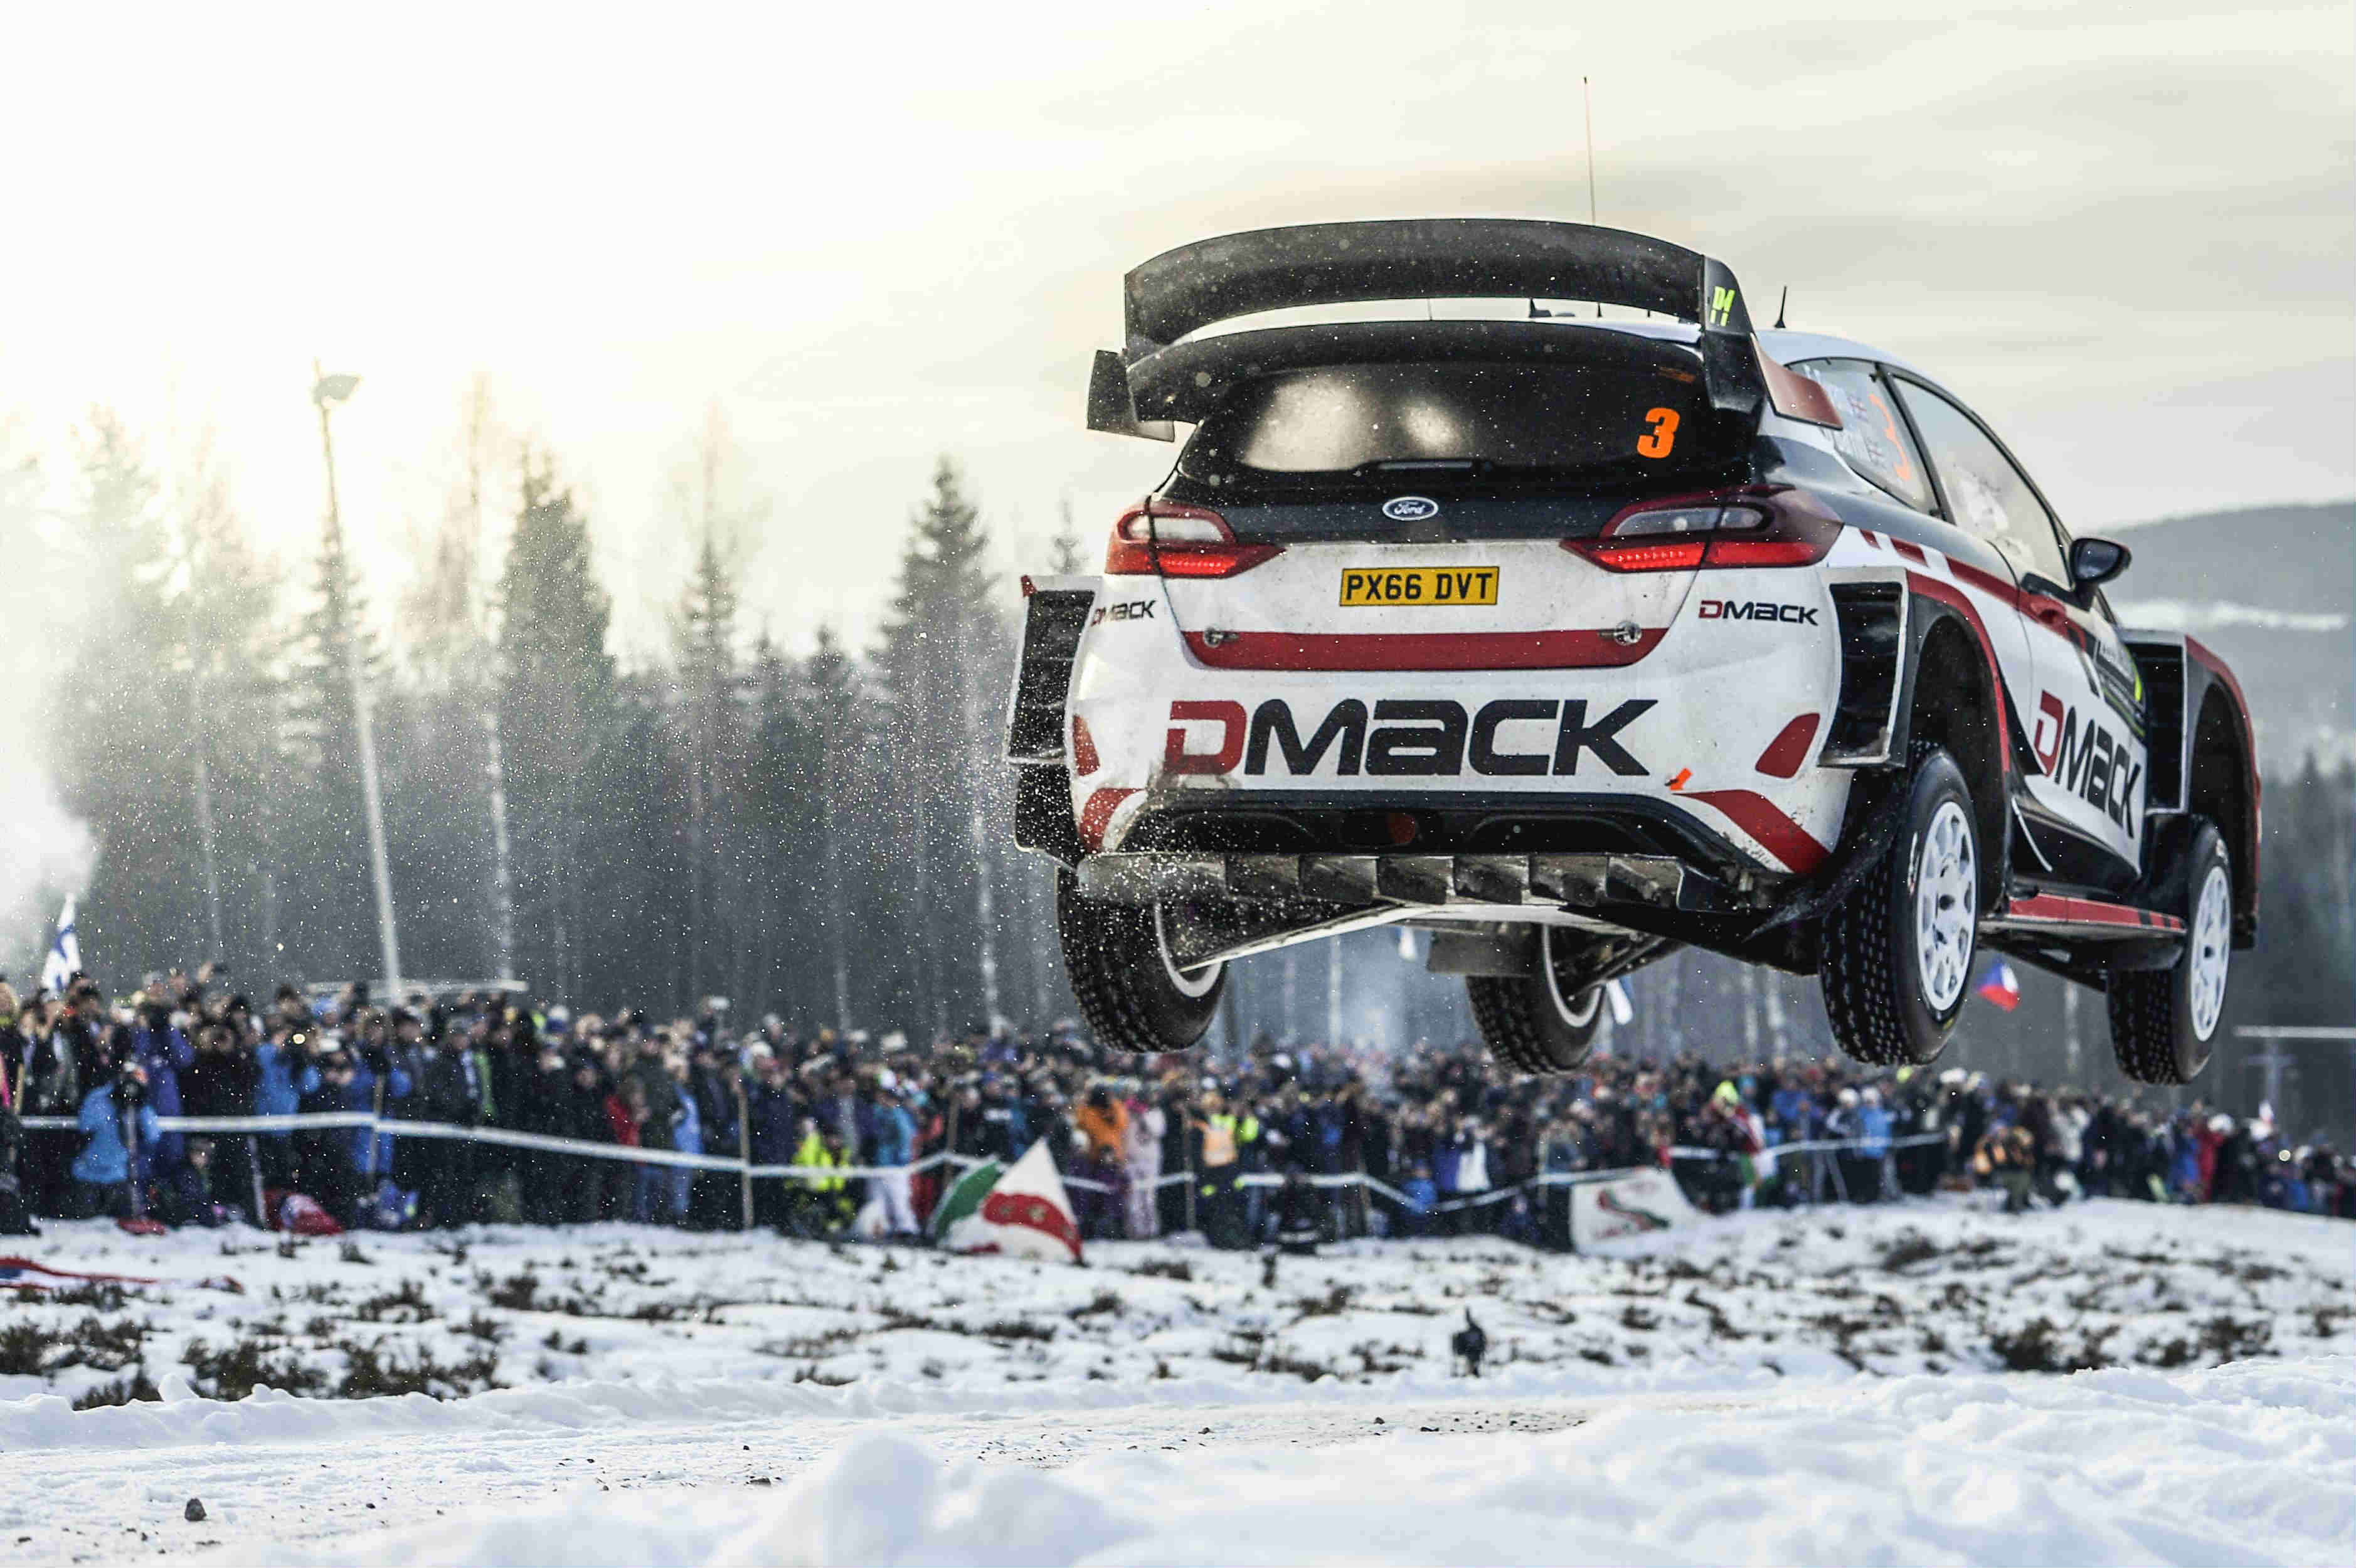 image of elfyn evans rally car in mid air during a snow race